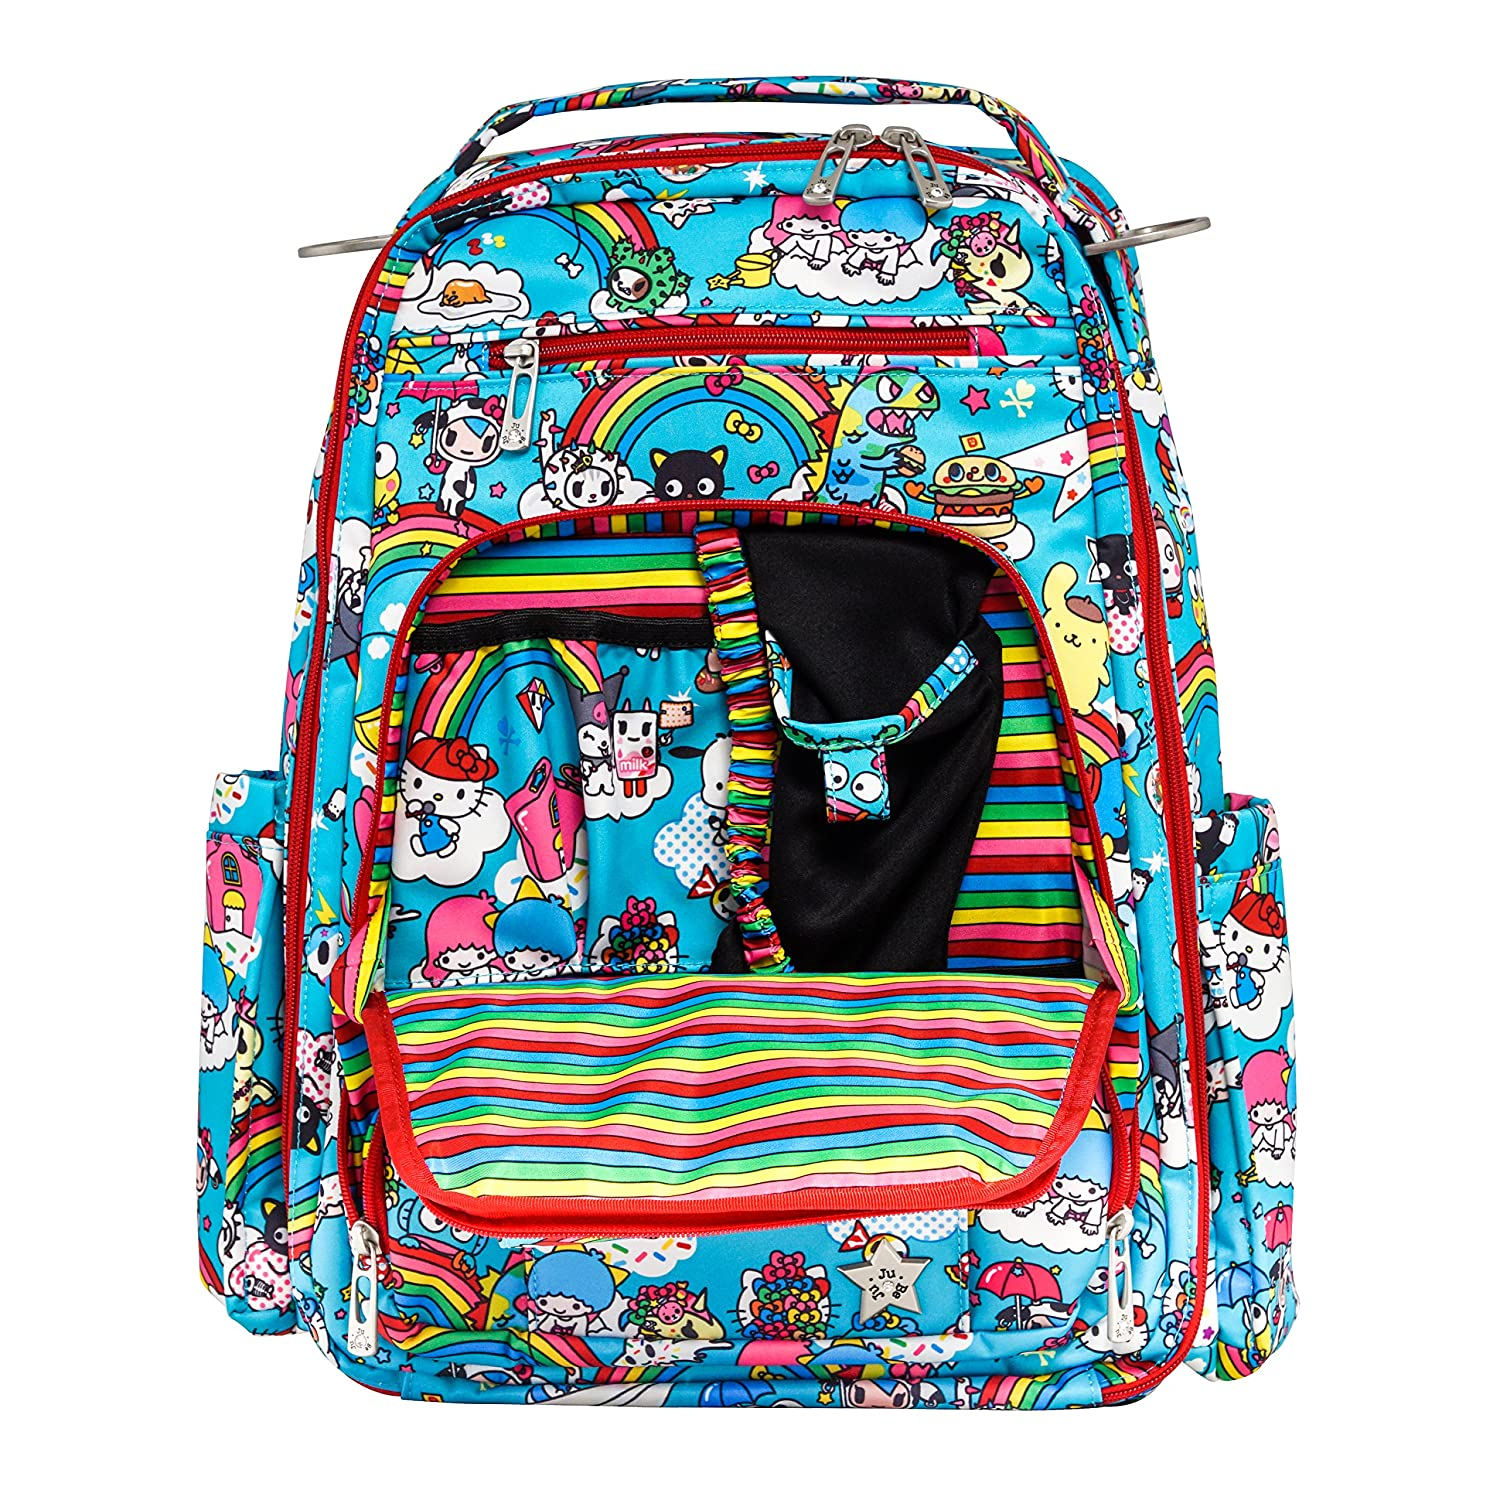 JuJuBe Be Right Back Multi-Functional Structured Backpack/Diaper Bag, Tokidoki Collection - Rainbow Dreams